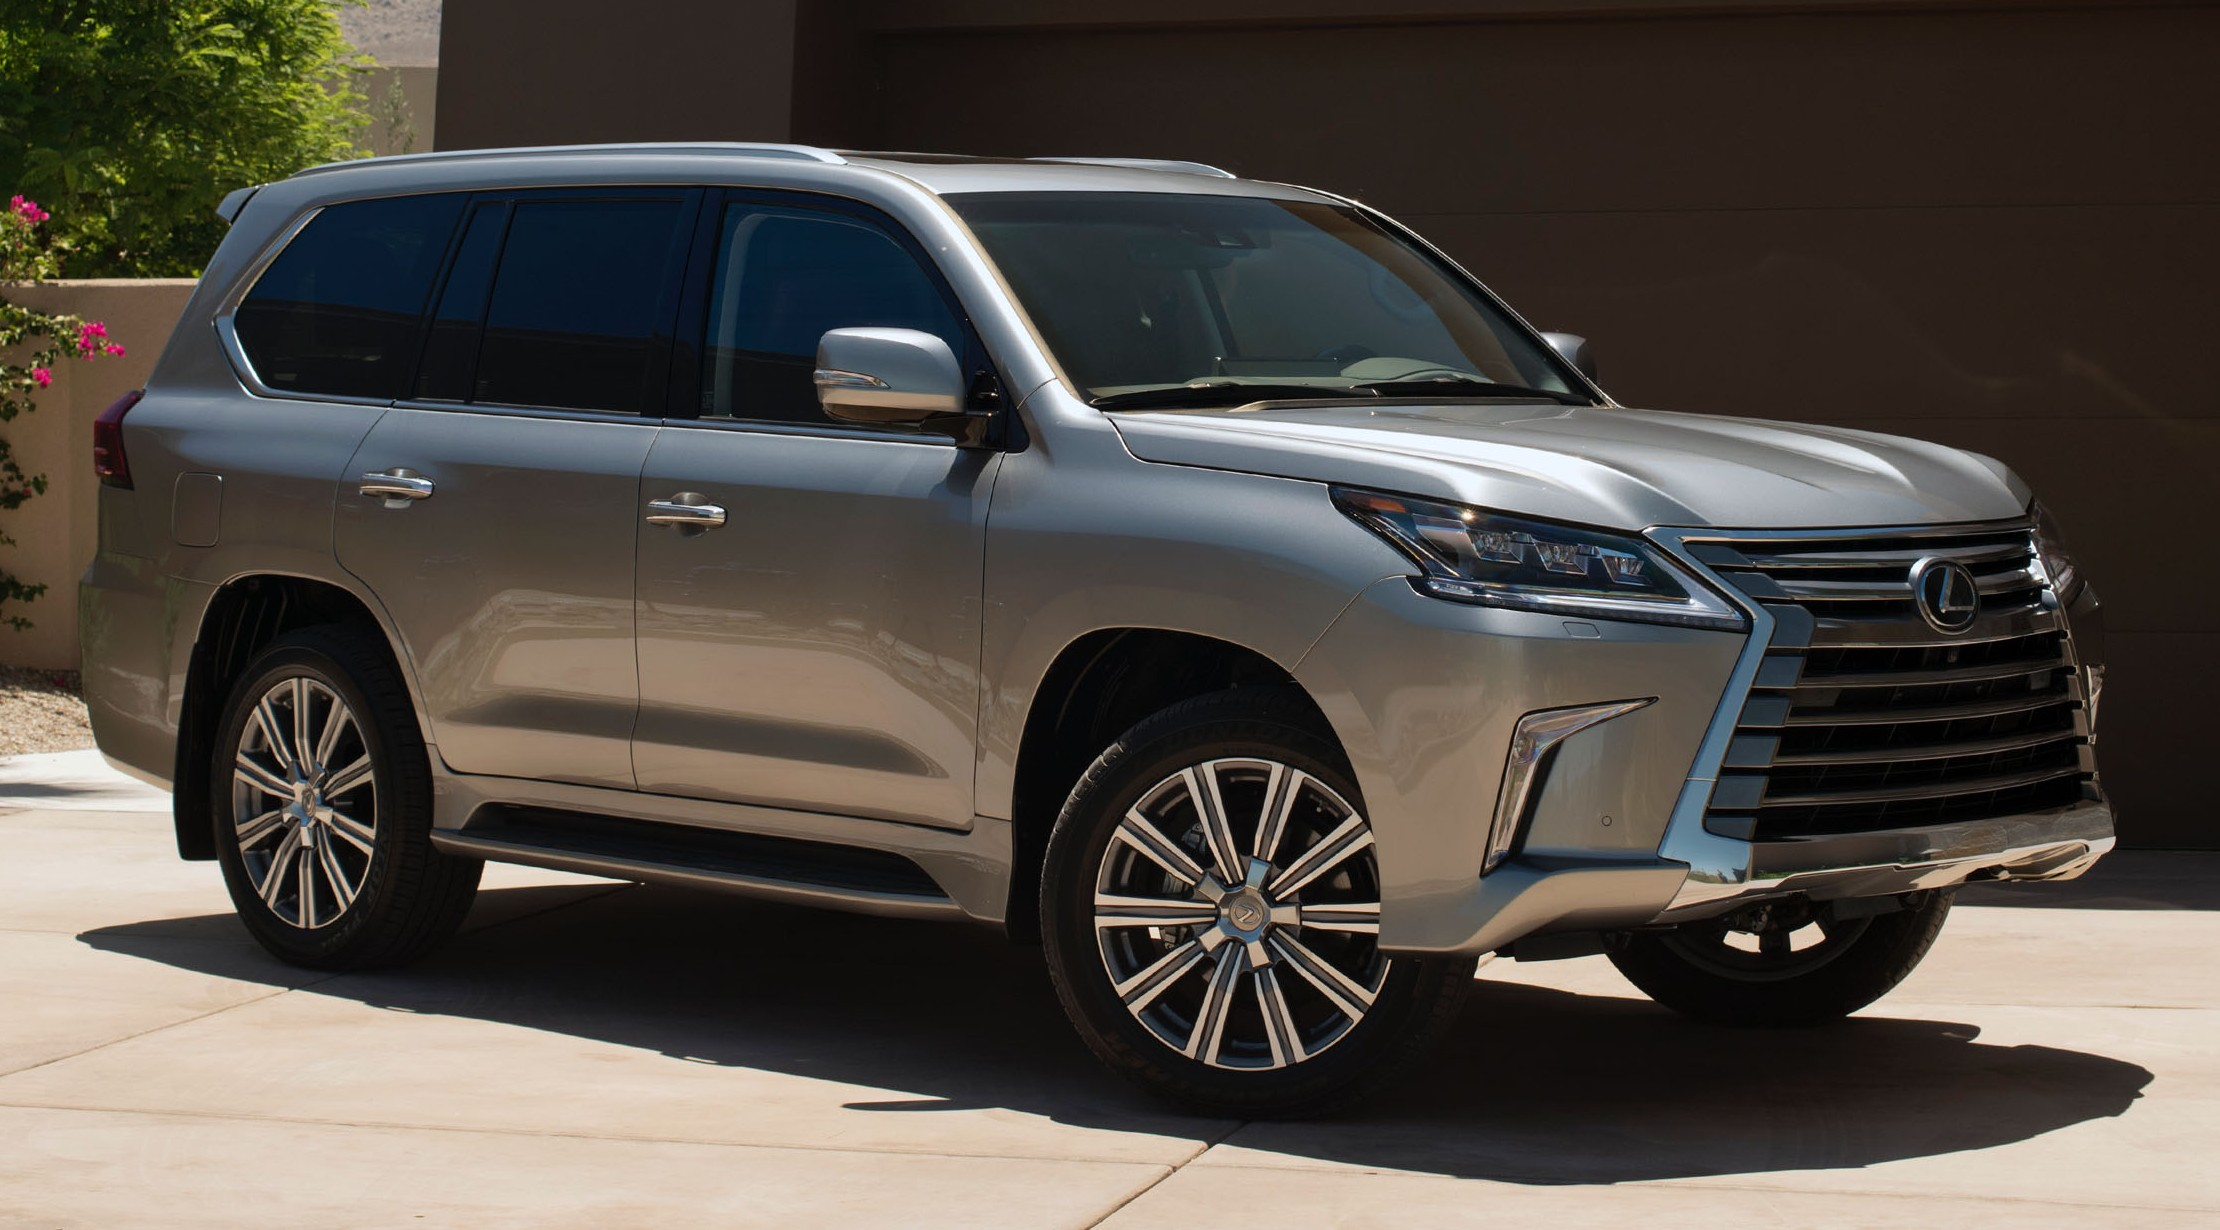 2015 lexus lx 570 styling review 2017 2018 best cars. Black Bedroom Furniture Sets. Home Design Ideas